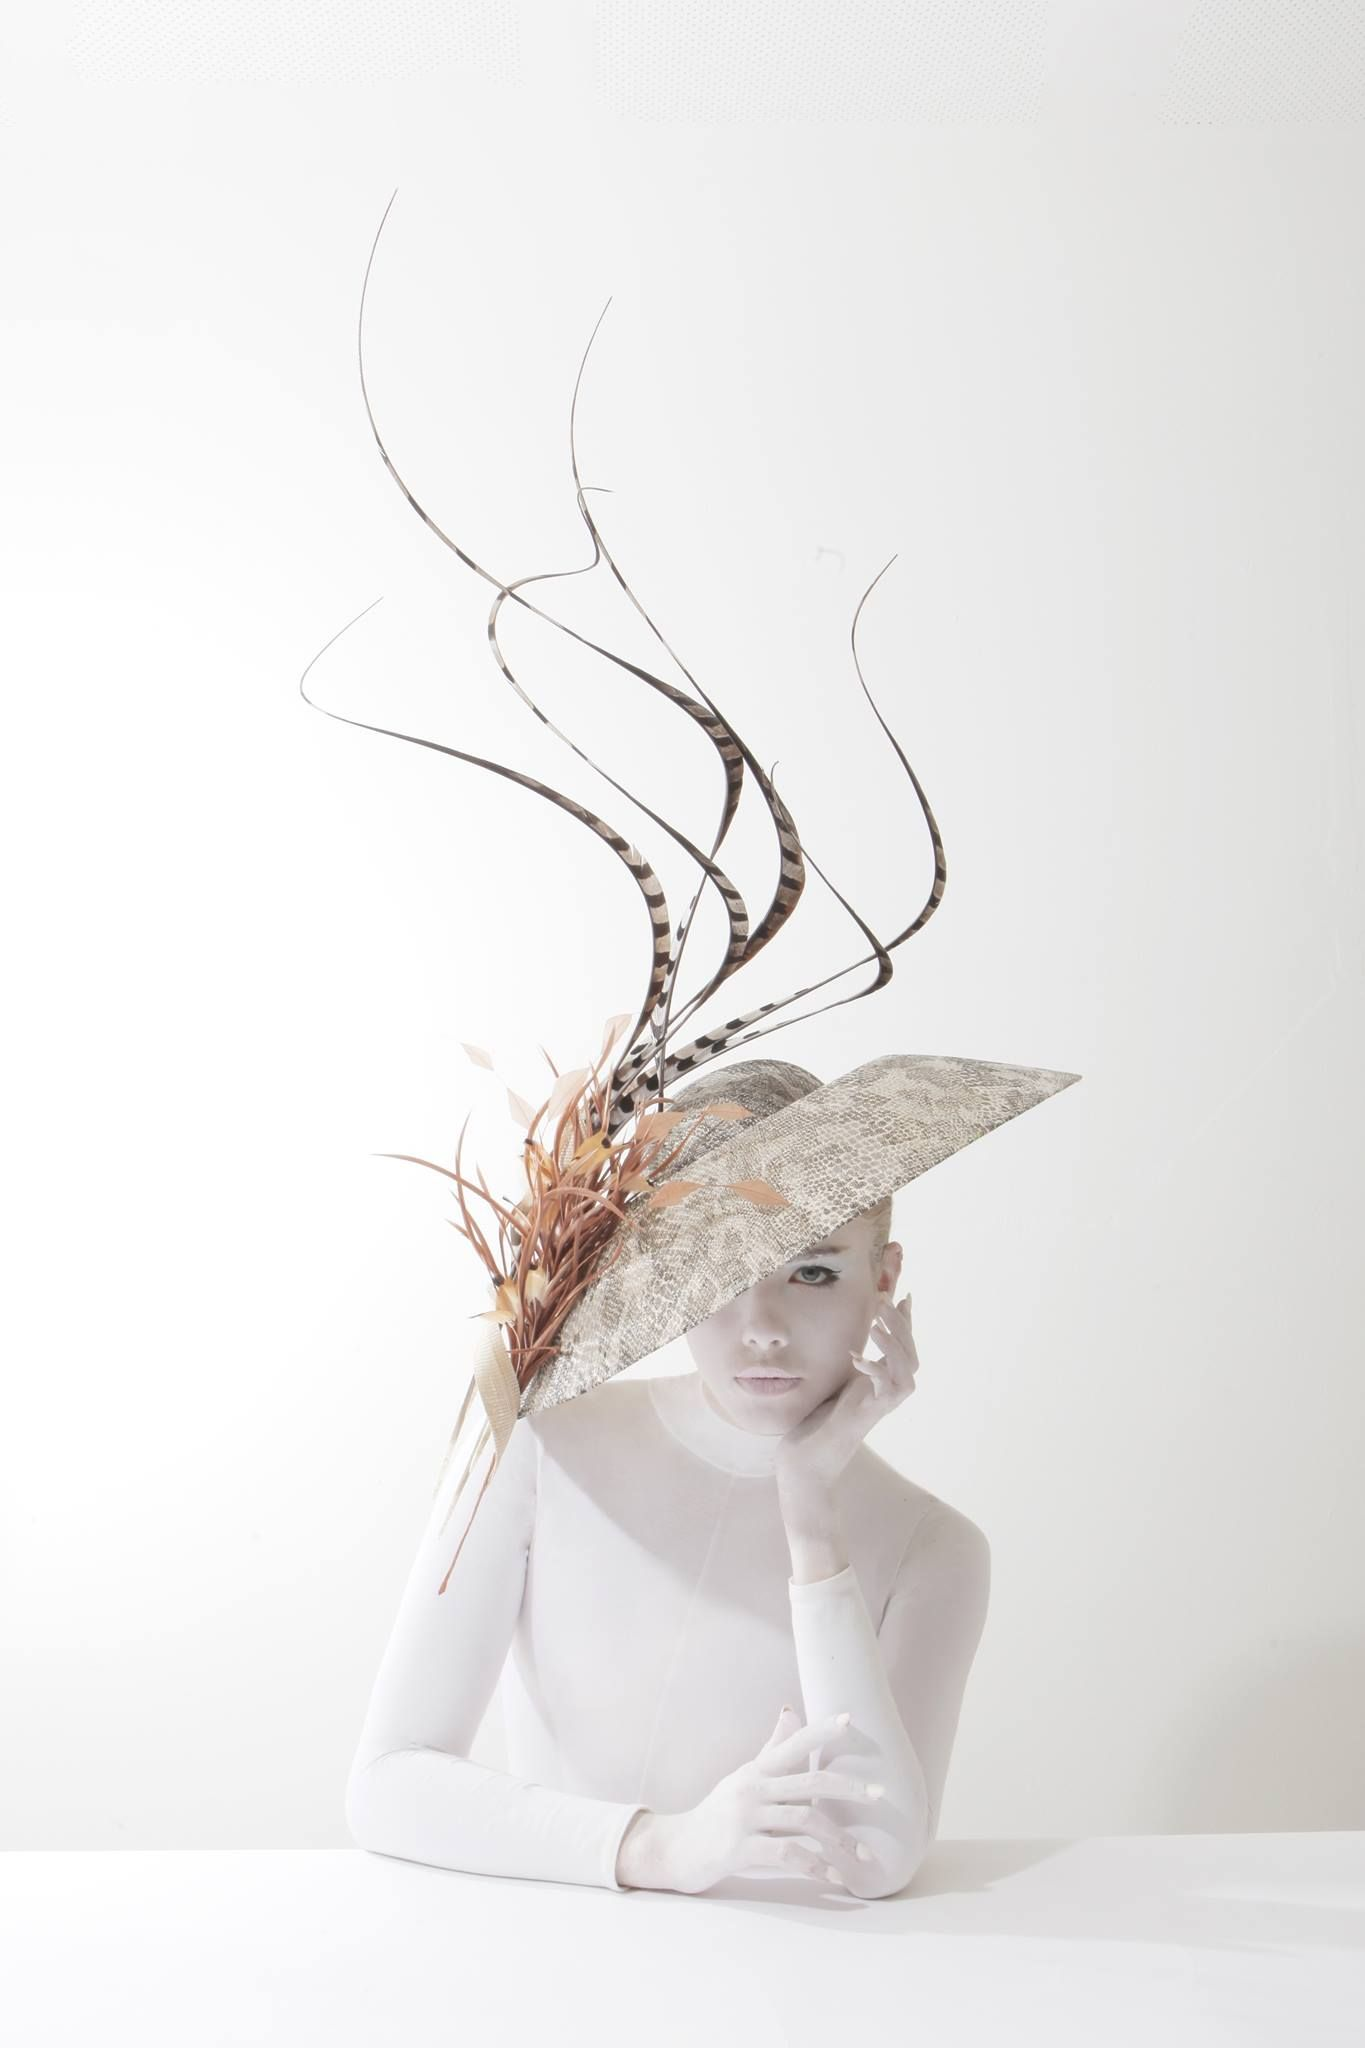 Hat by Philip Treacy from the Spring Summer 2014 collection. Picture by Kurtiss Lloyd. Model Alexandra Moss